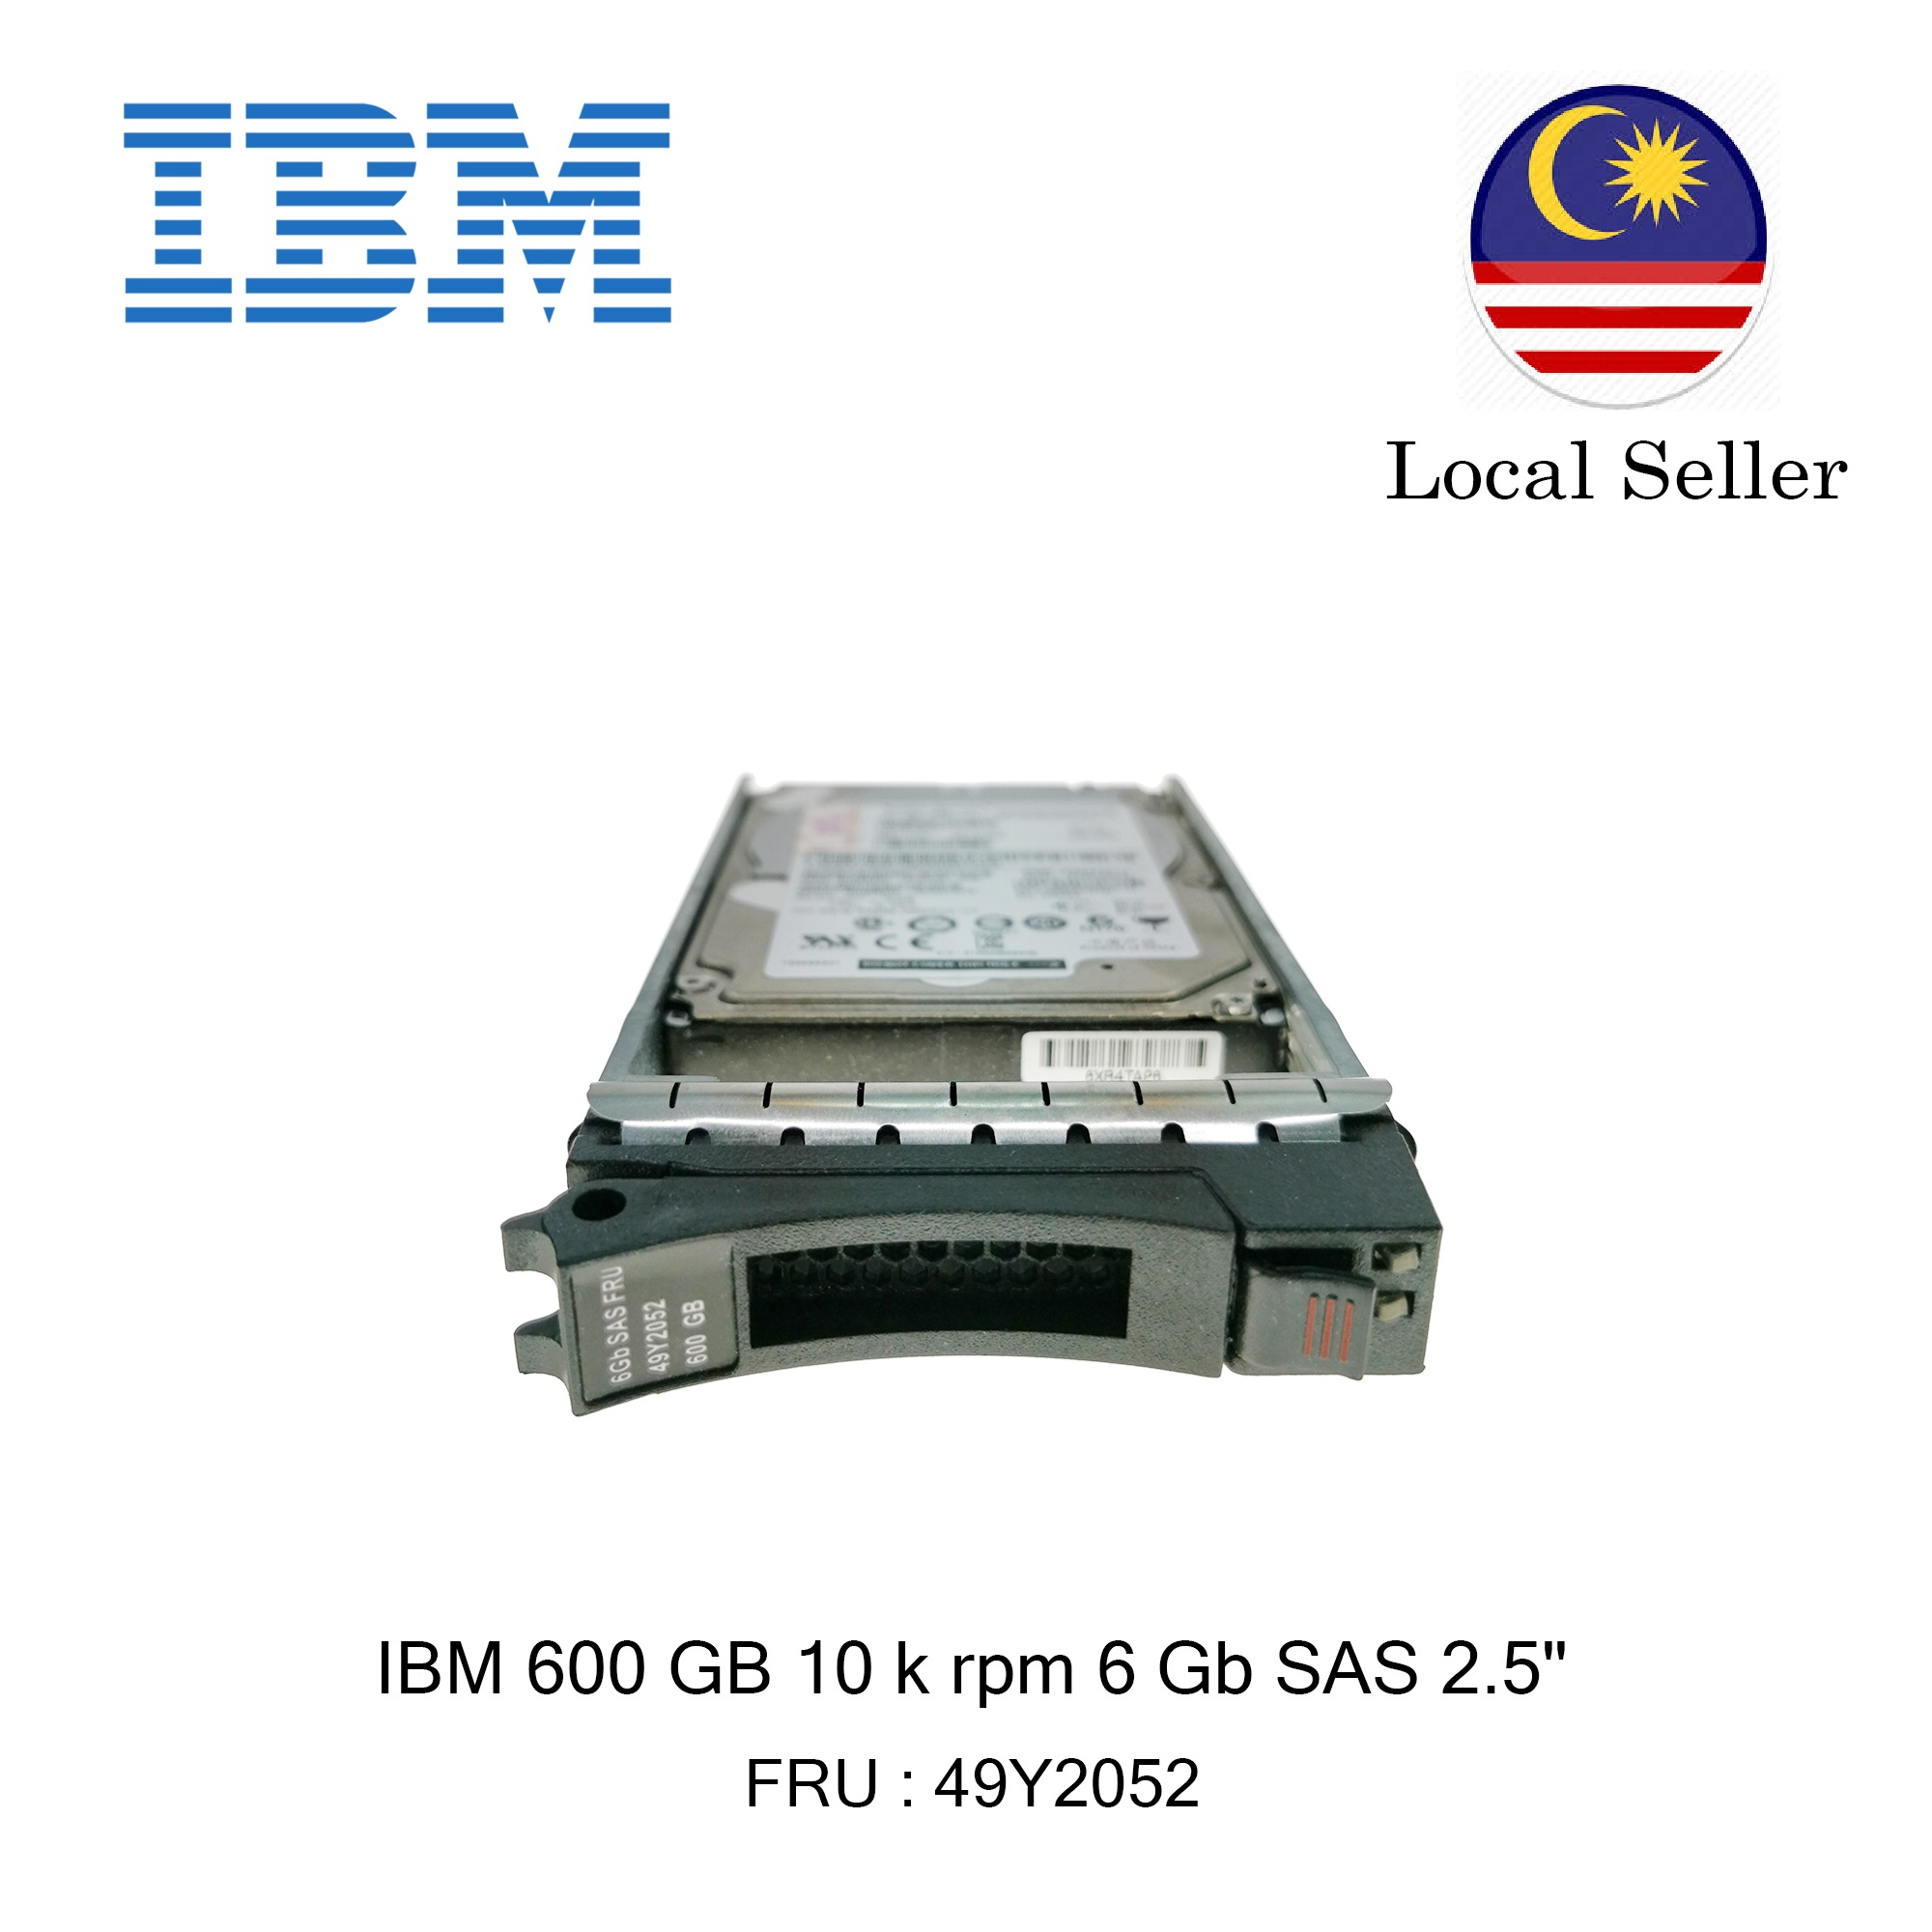 IBM 600 GB 10,000 rpm 6 Gbps SAS HDD // 49Y2052